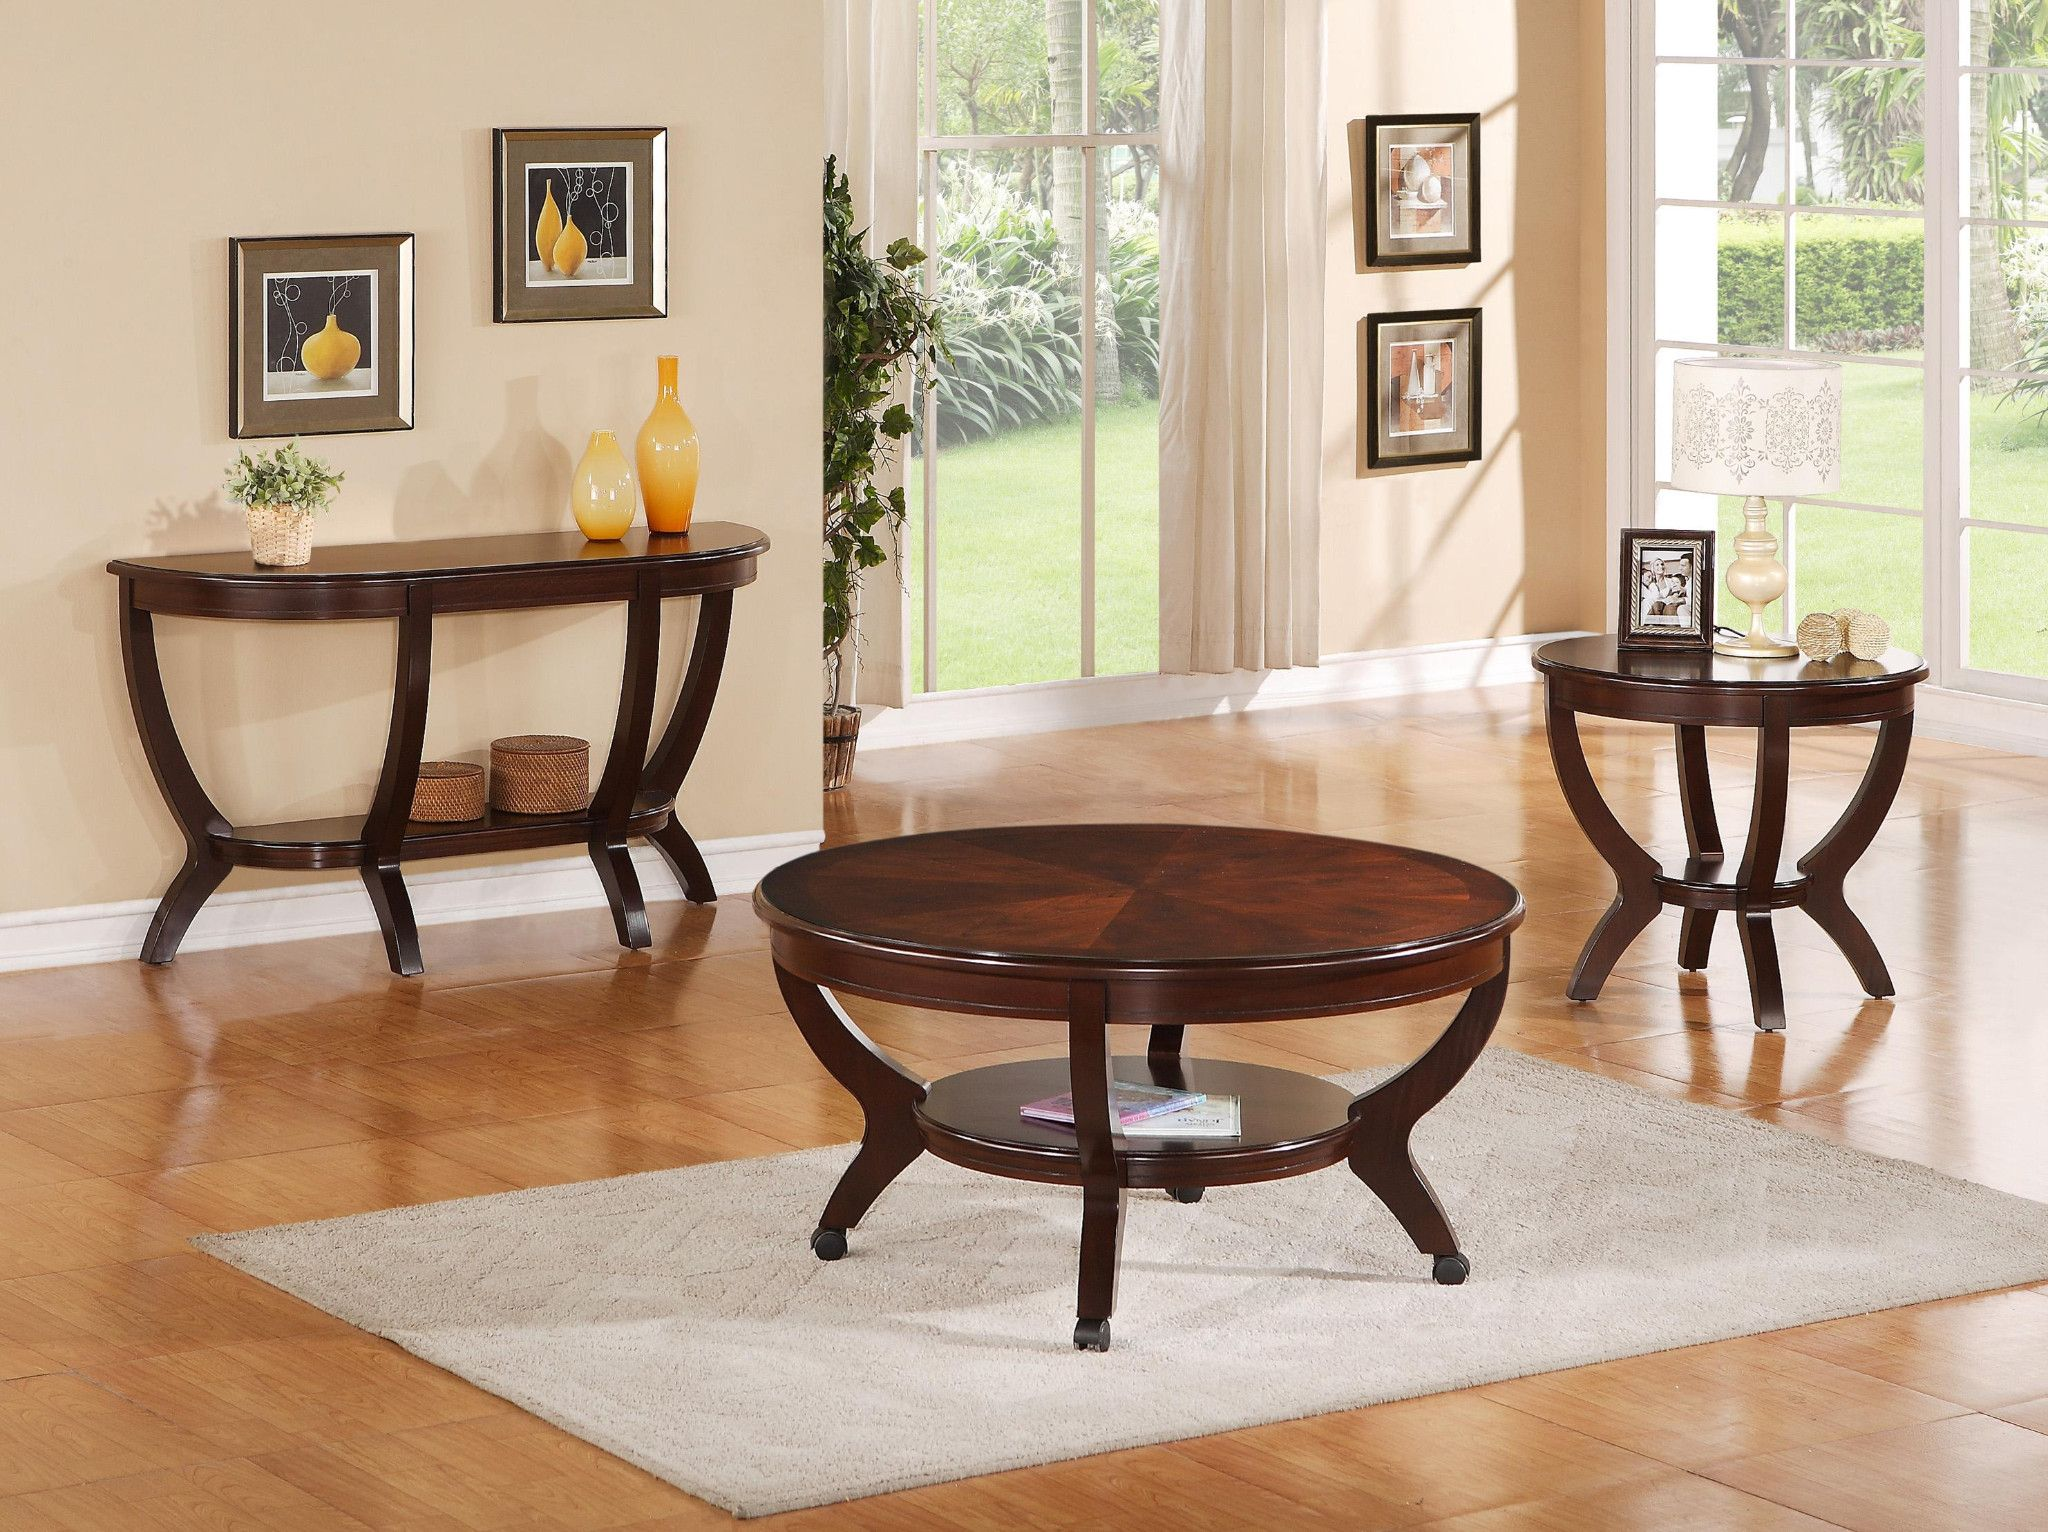 Brownstown 3 Piece Table Set Coffee And 2 End Tables 399 00 Coffee Table 40 Di Center Table Living Room Coffee Table Dining Room Furniture Sets [ 1532 x 2048 Pixel ]